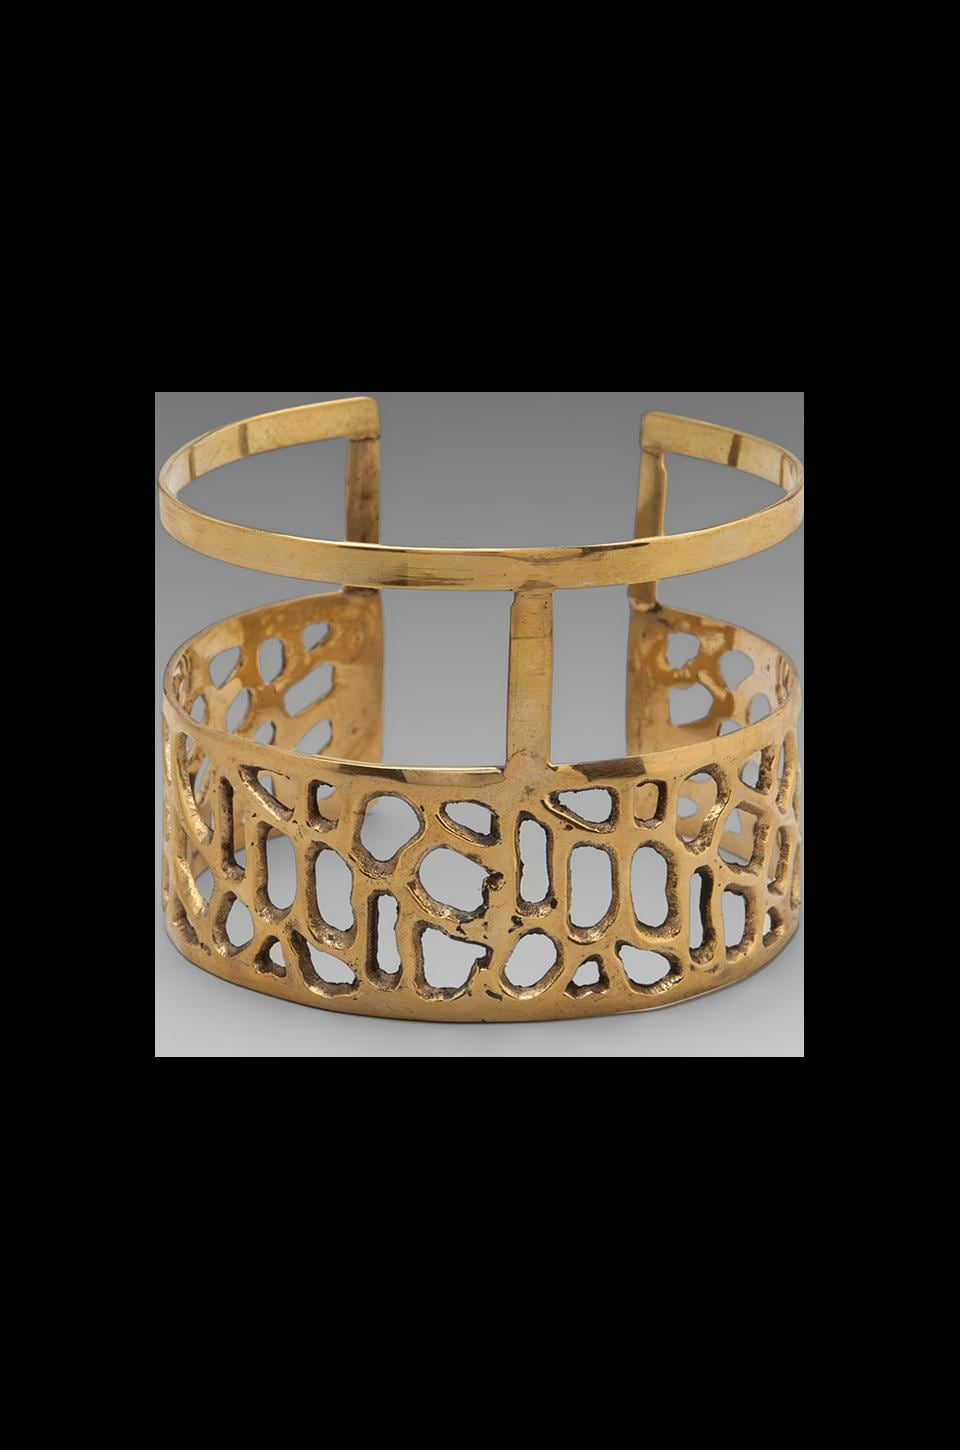 Obey Crossroads Upper Arm Cuff in Antique Gold